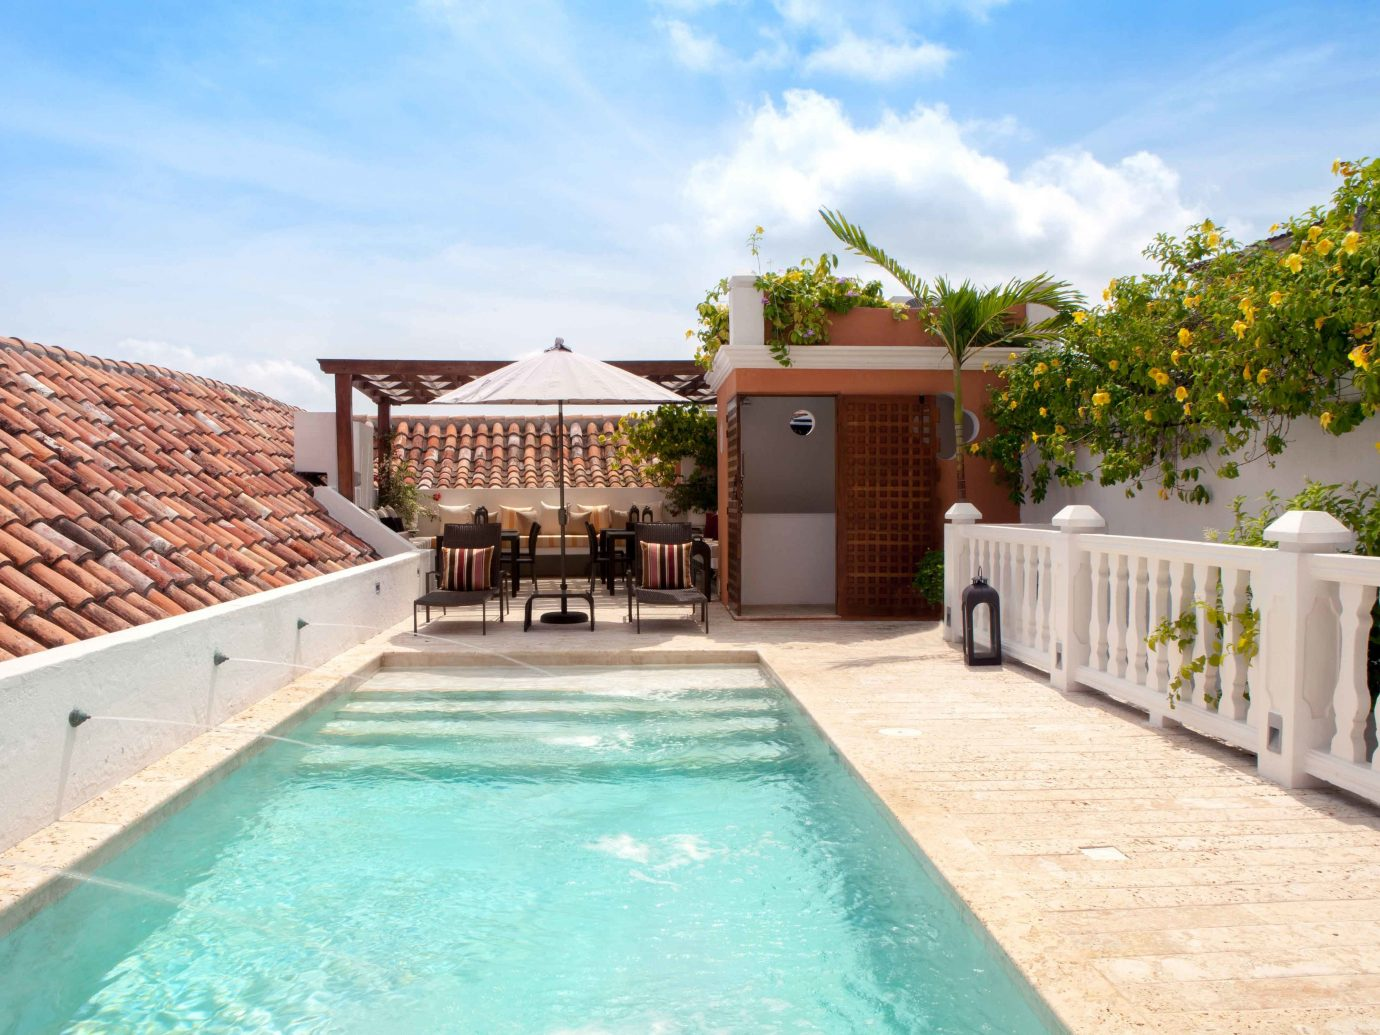 Boutique Hotels Pool Romance sky ground outdoor swimming pool property building estate Villa real estate vacation home backyard Resort cottage condominium mansion hacienda stone cement